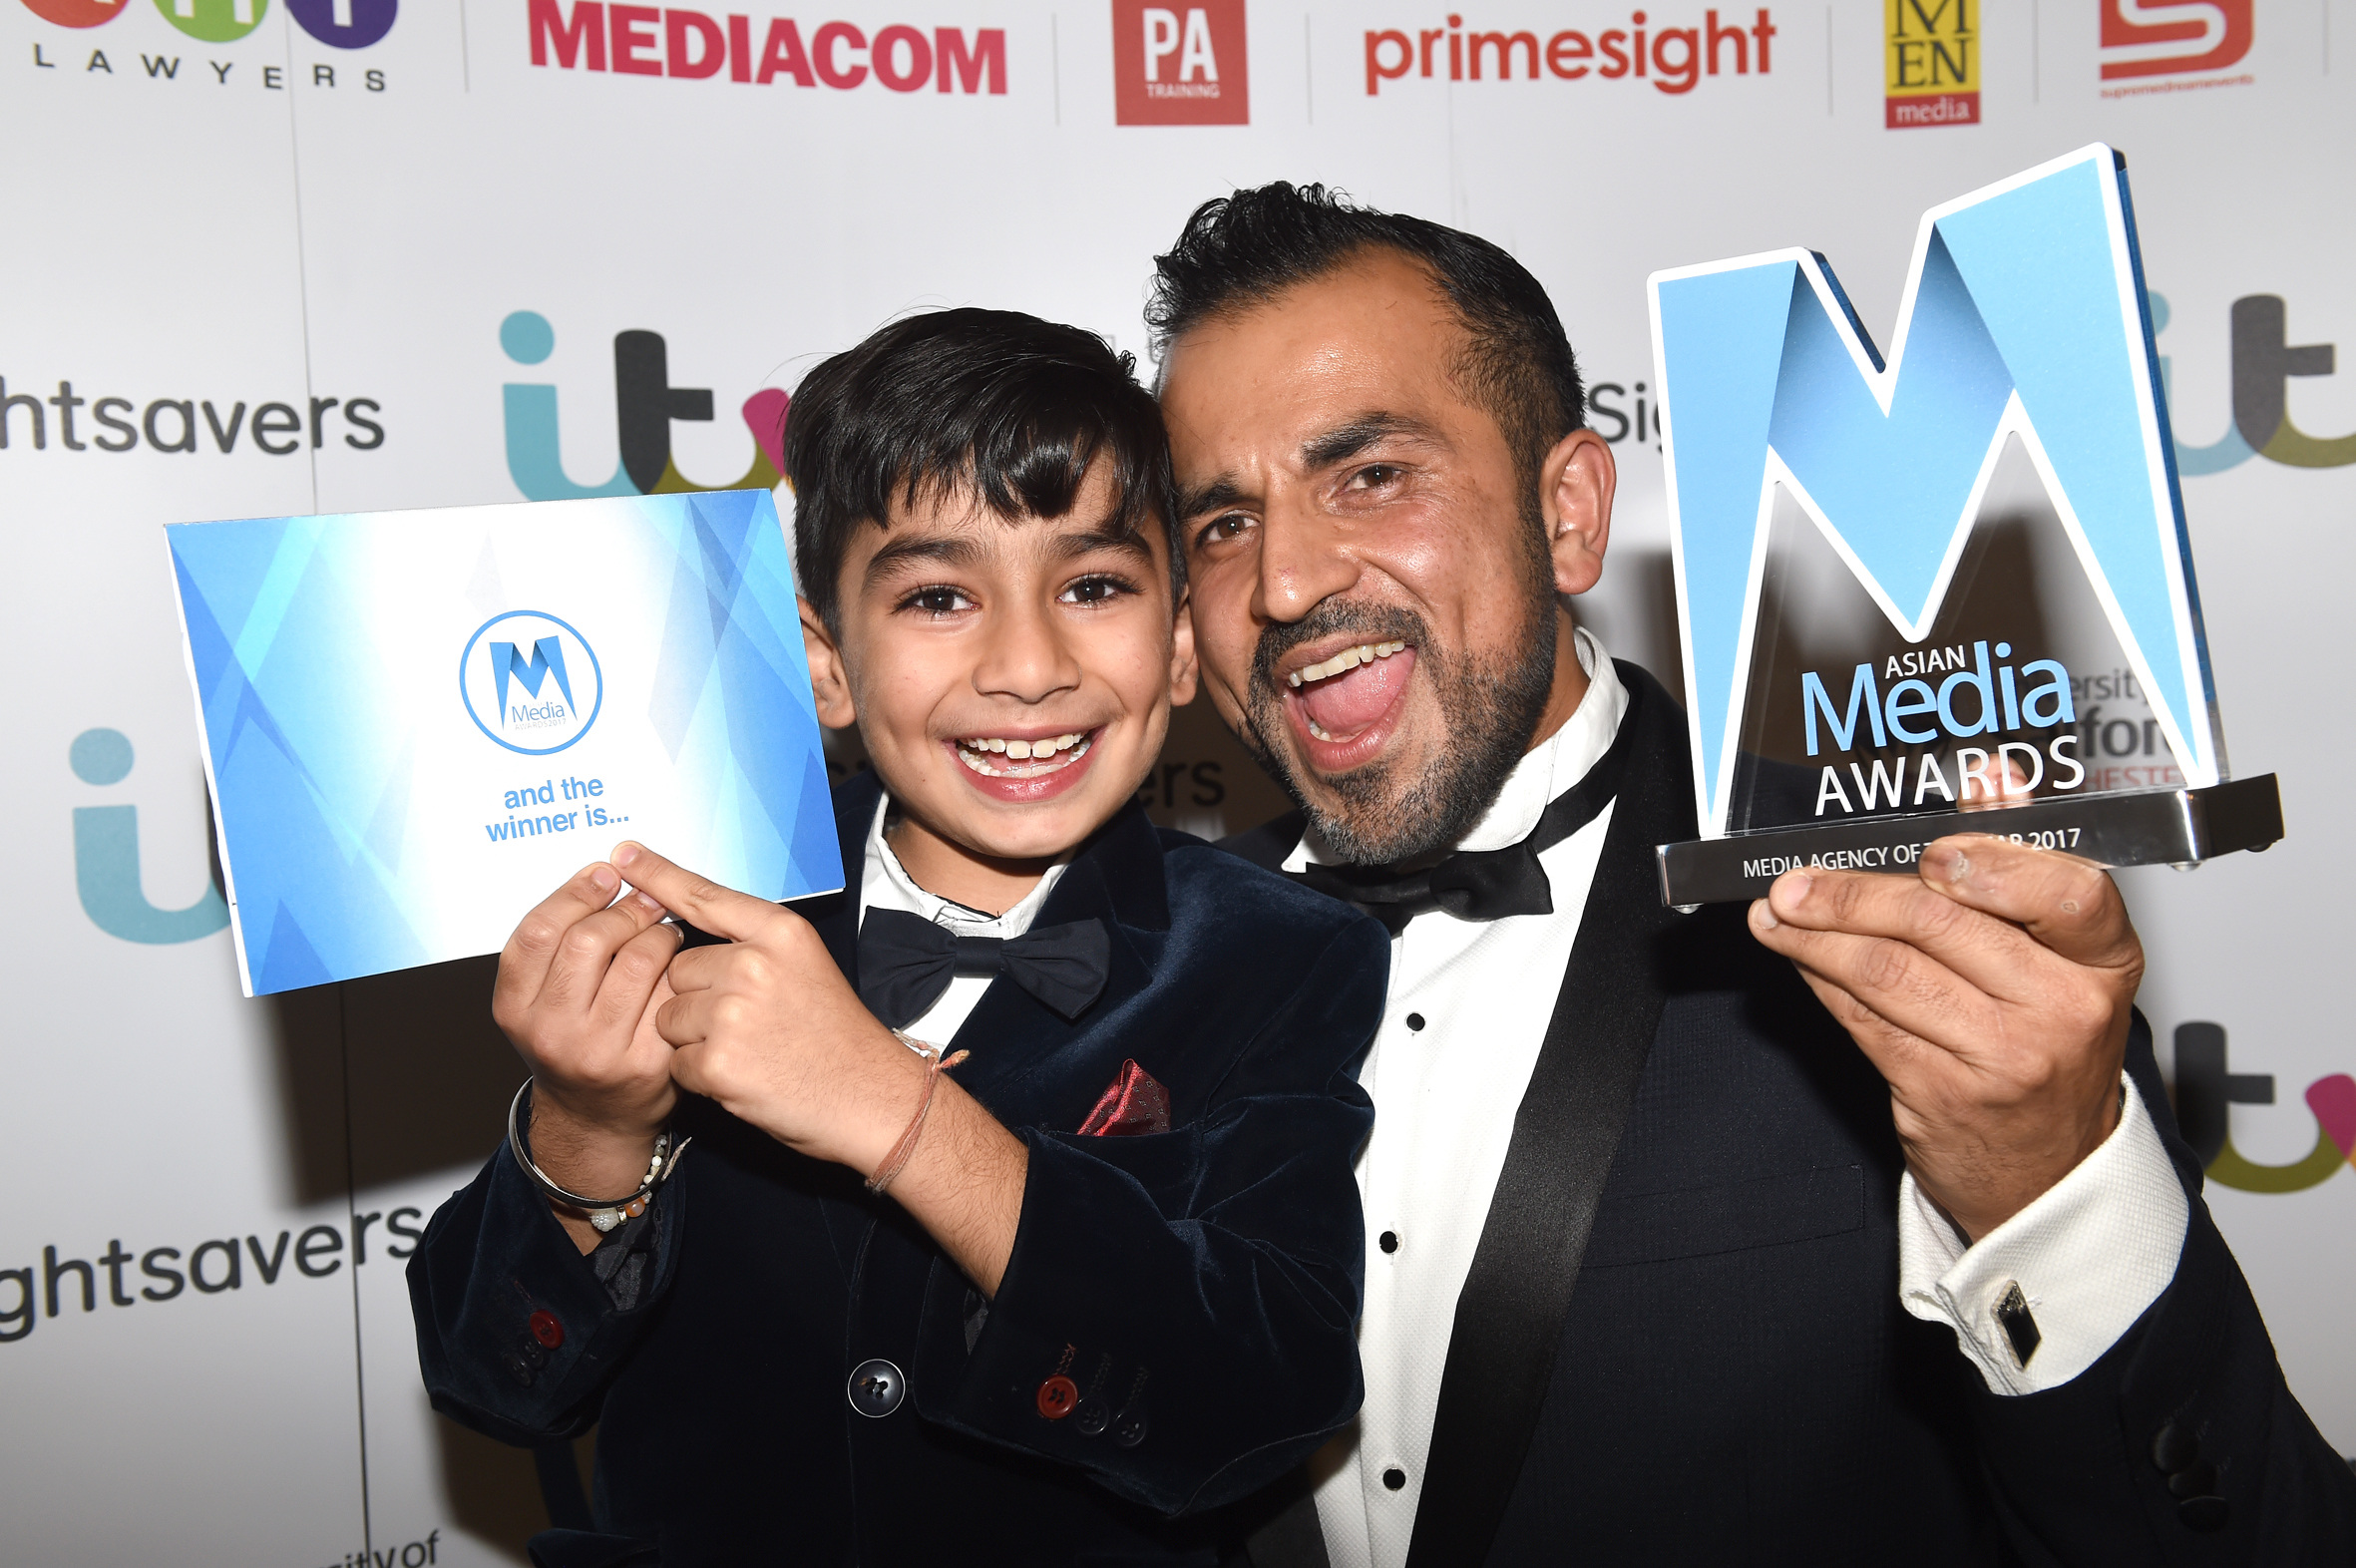 Ethnic Reach picks-up first ever Asian Media Award